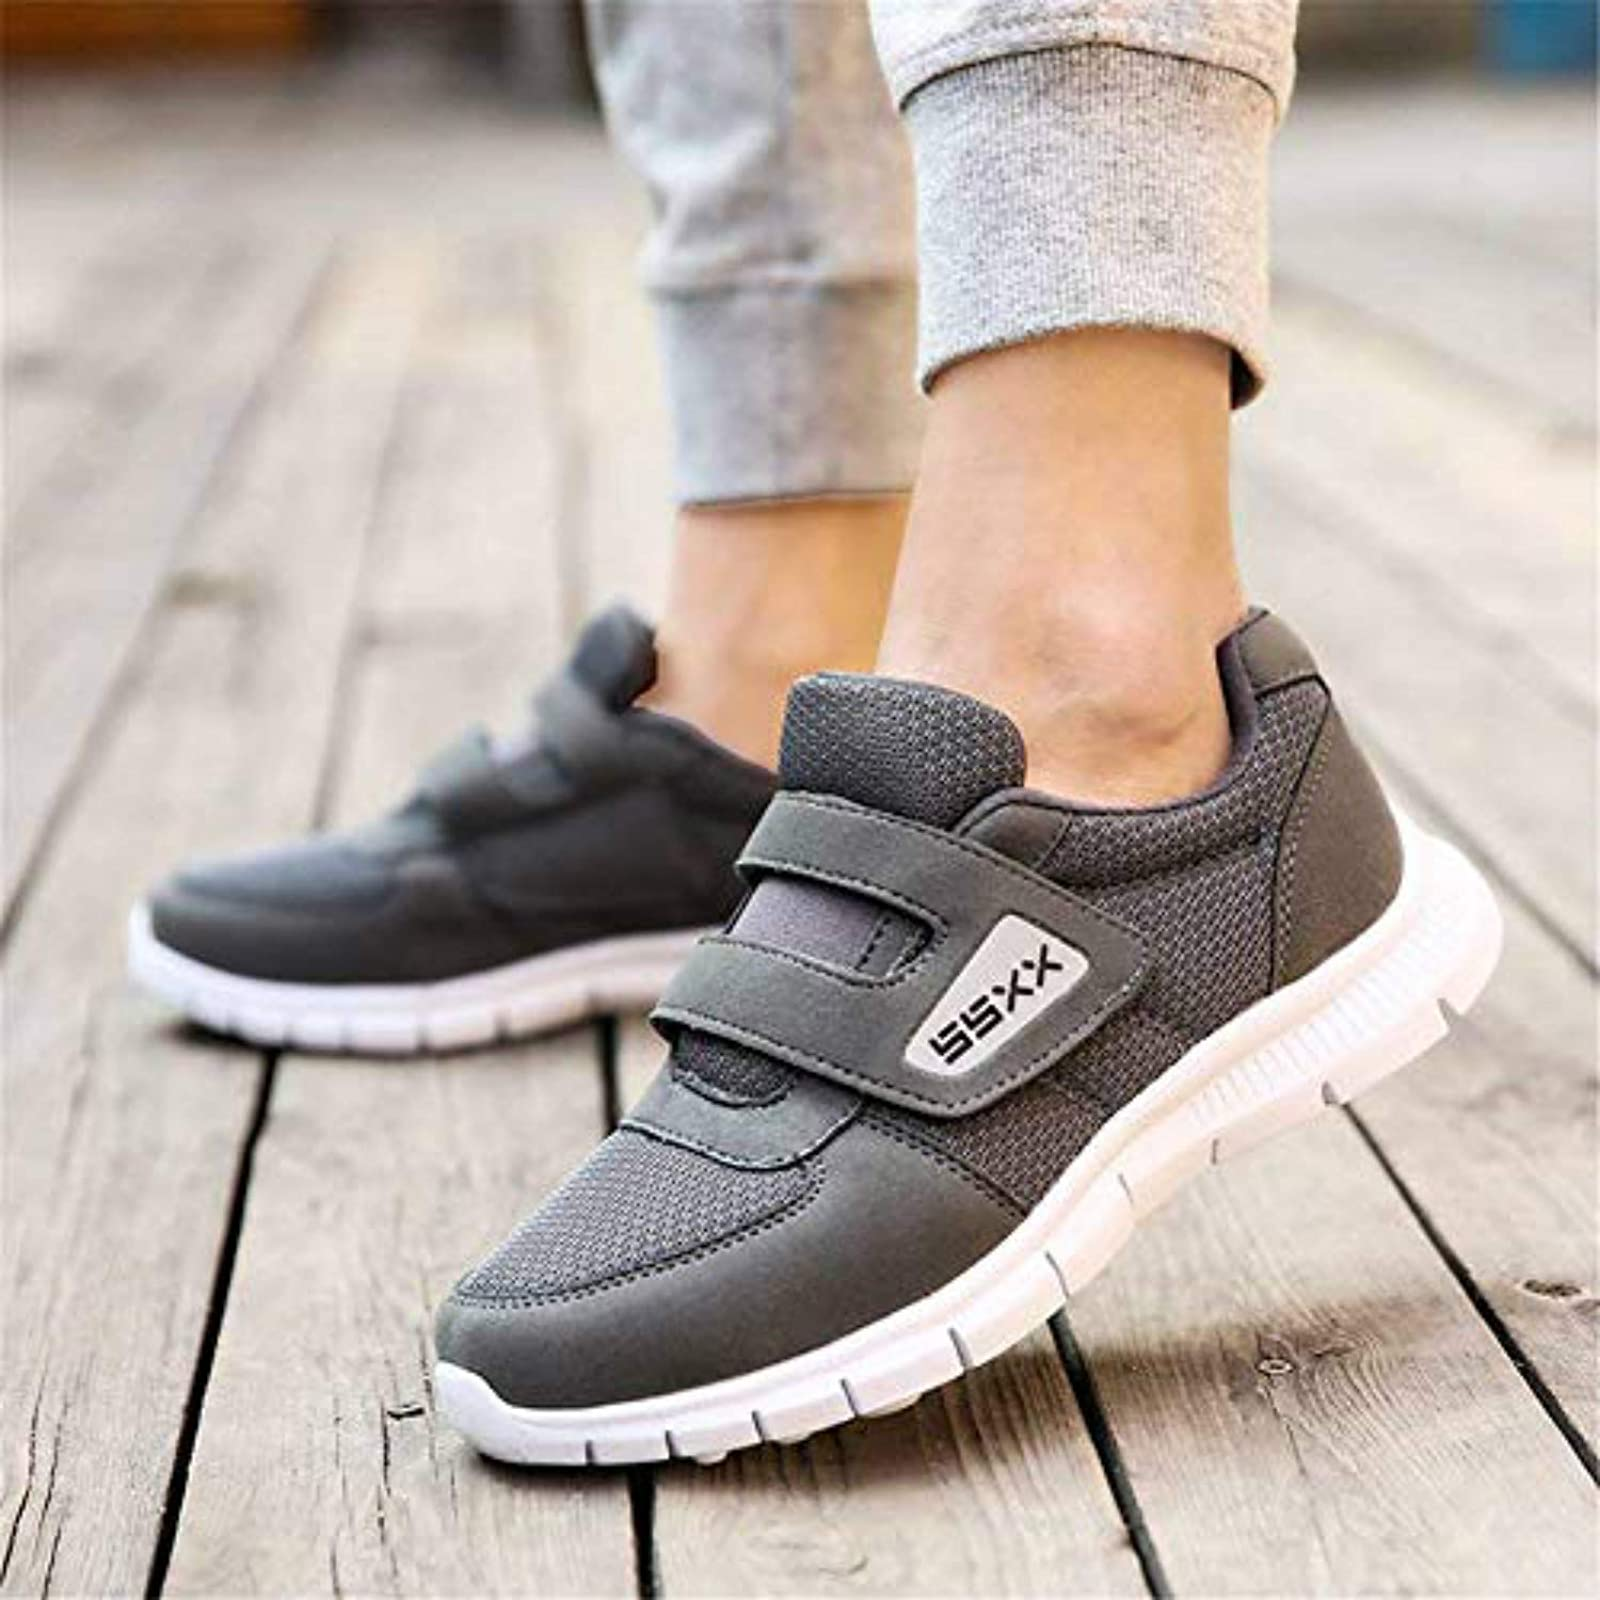 Fires Men's Casual Sneakers Lightweight Athletic - 6